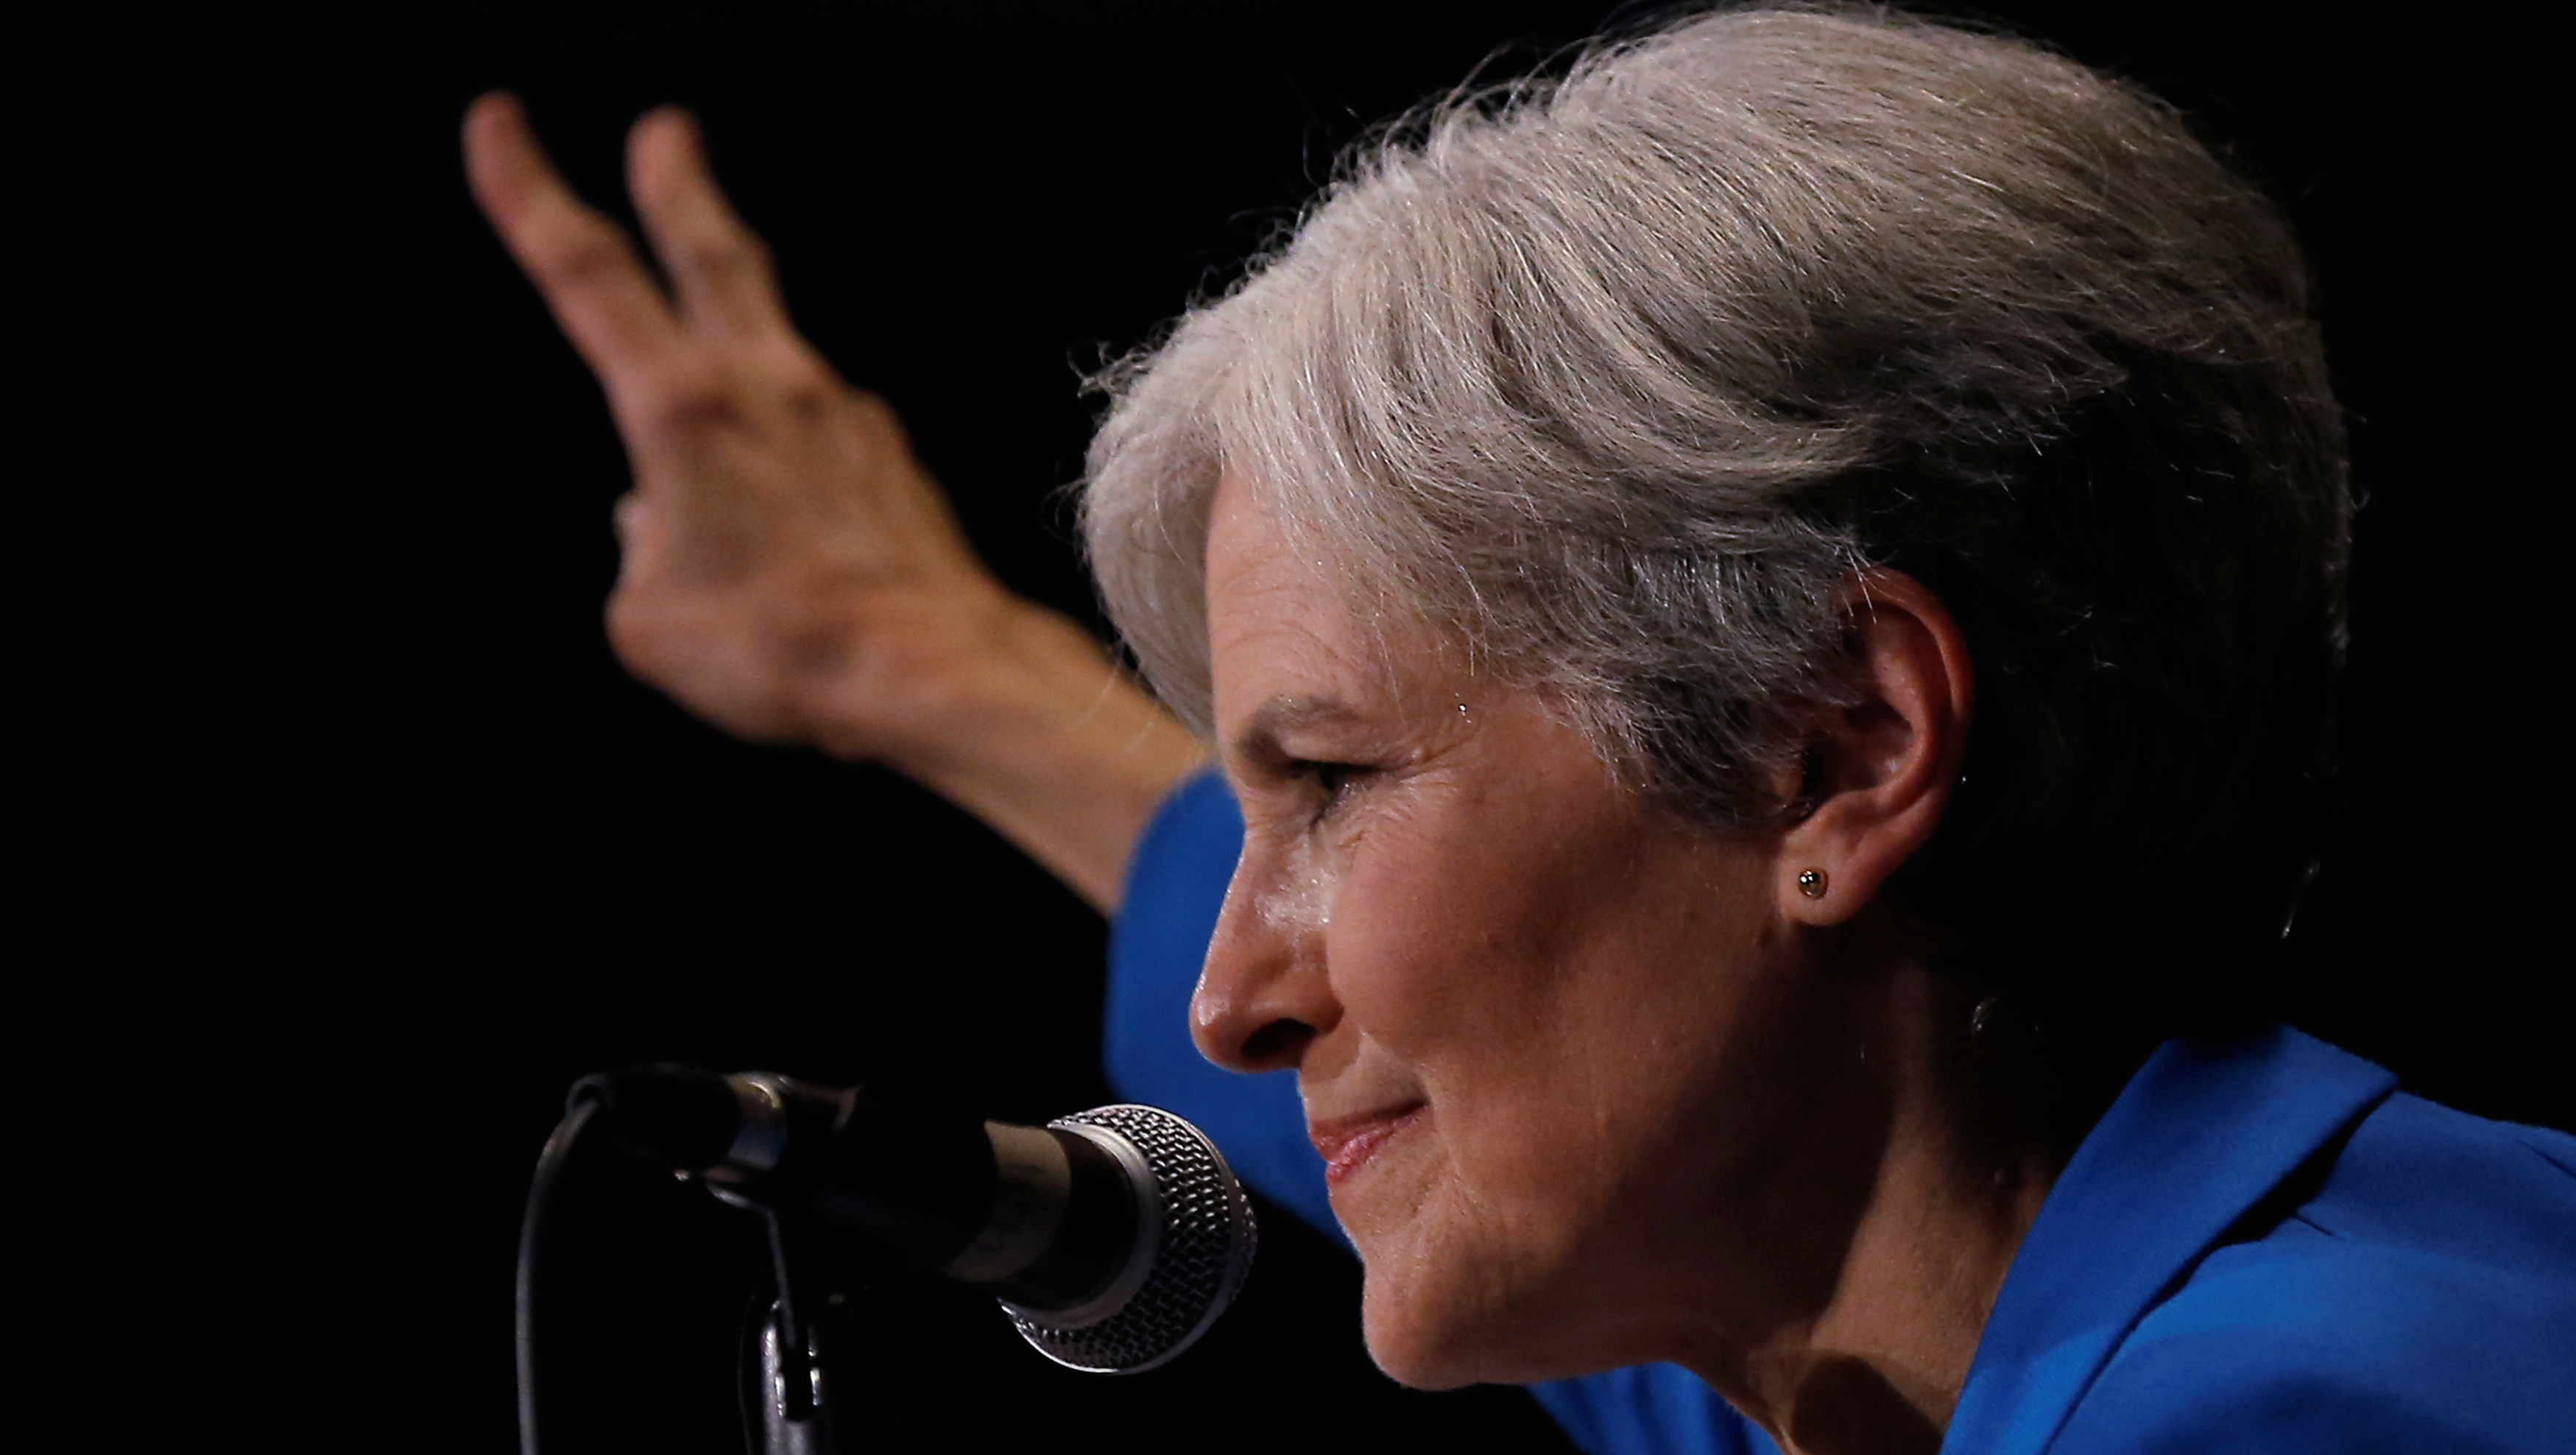 Green Party presidential candidate Jill Stein attends a campaign rally in Chicago, Illinois, U.S. September 8, 2016.